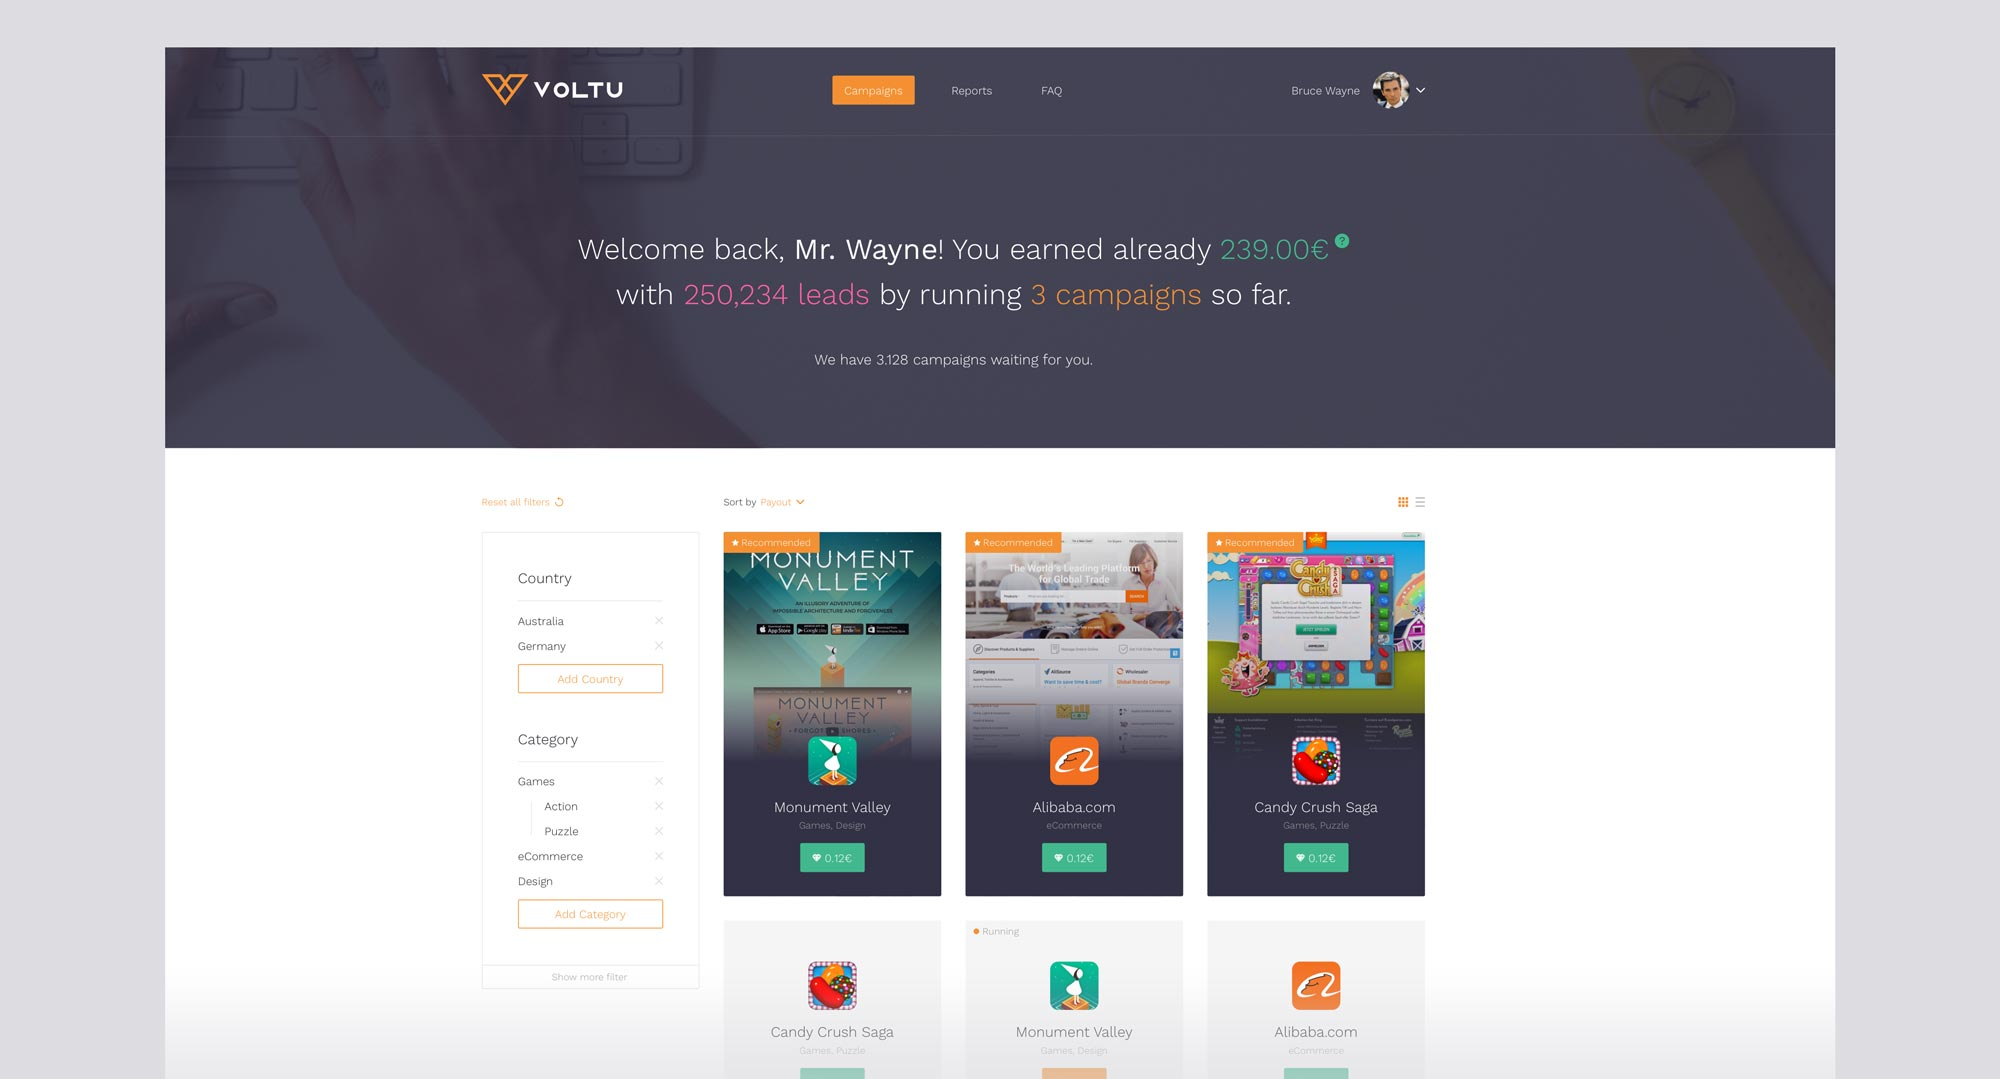 MNDN Voltu Webapp UI Campaigns Grid Screen Design